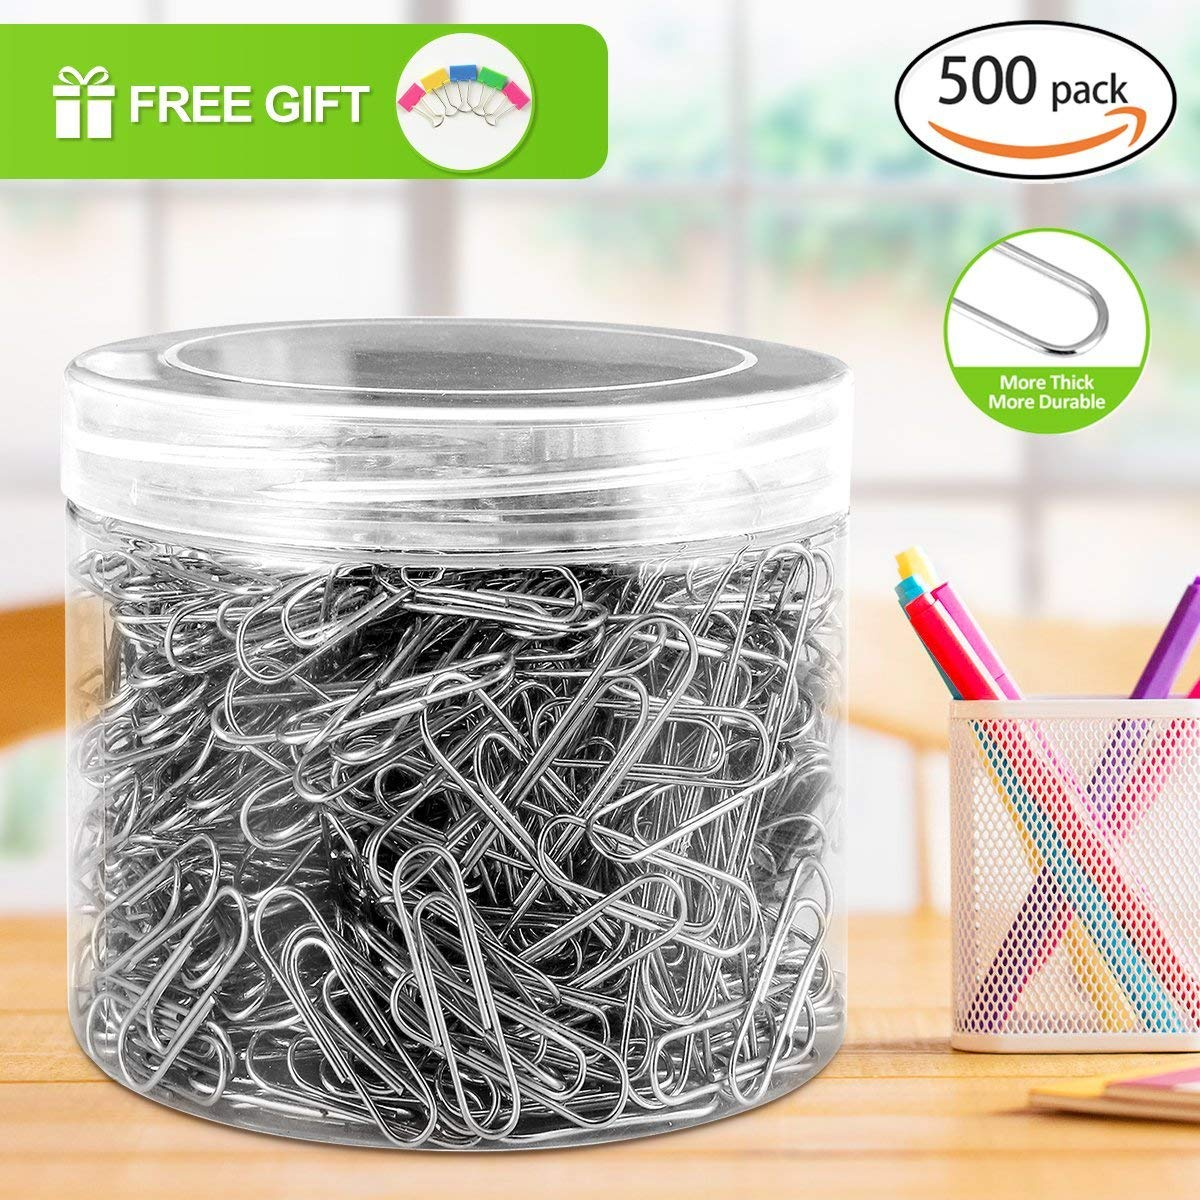 Paper Clips, 500 Pieces Sliver Thick Durable Paperclips, Free Gift for 5 Park Paper Clmps, 400 Pieces Medium Paper Clips and 100 Pieces Jumbo Paper Clips, Easy to Attach and Remove Nonskid Paperclips